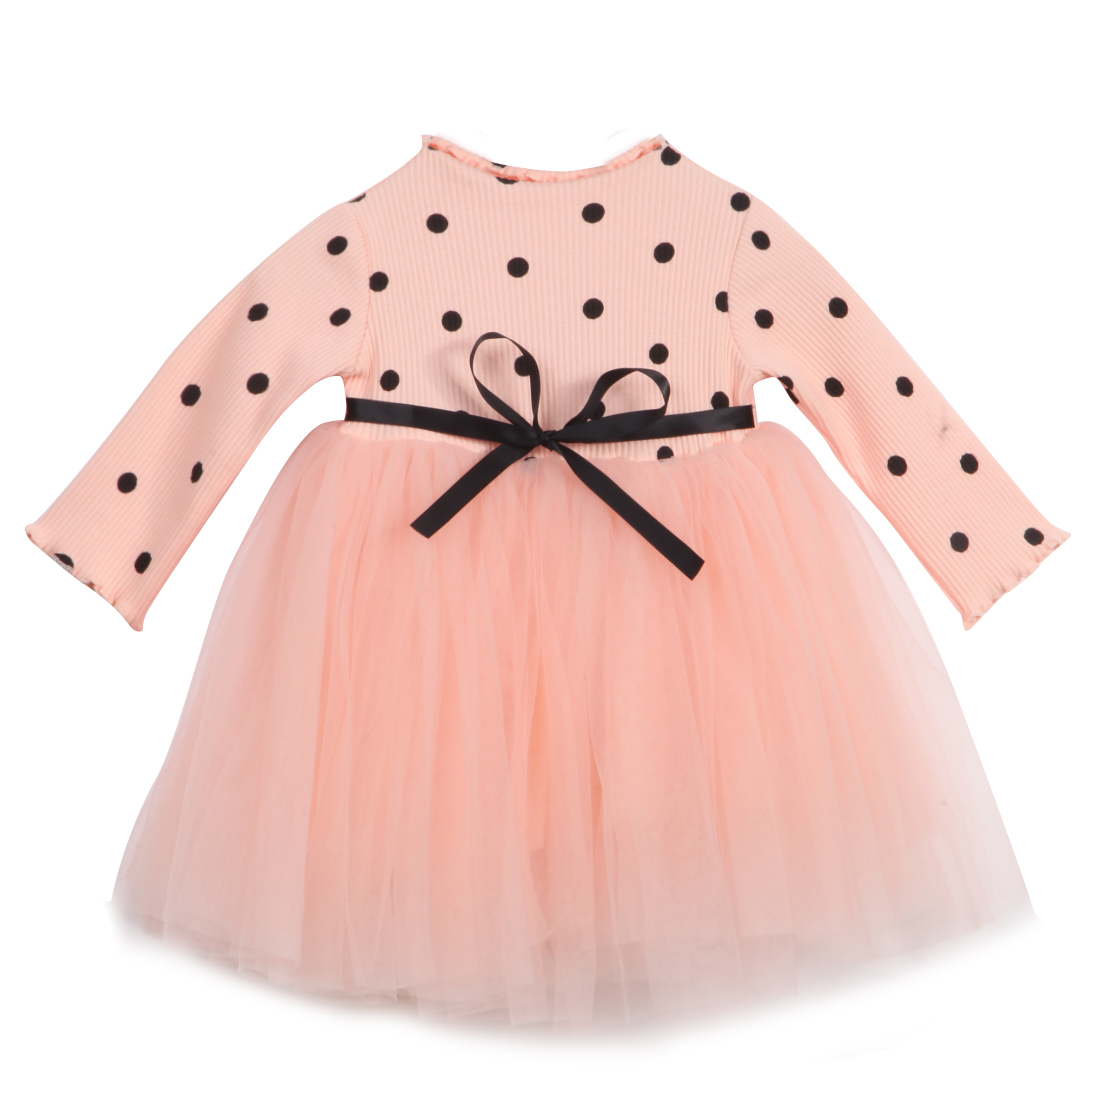 Cute Newborn Kids Baby Girl Clothing Dresses Tutu Cute Ball Summer Polka Dot Lace Tutu Dress Girls Clothes scalloped lace spliced polka dot briefs